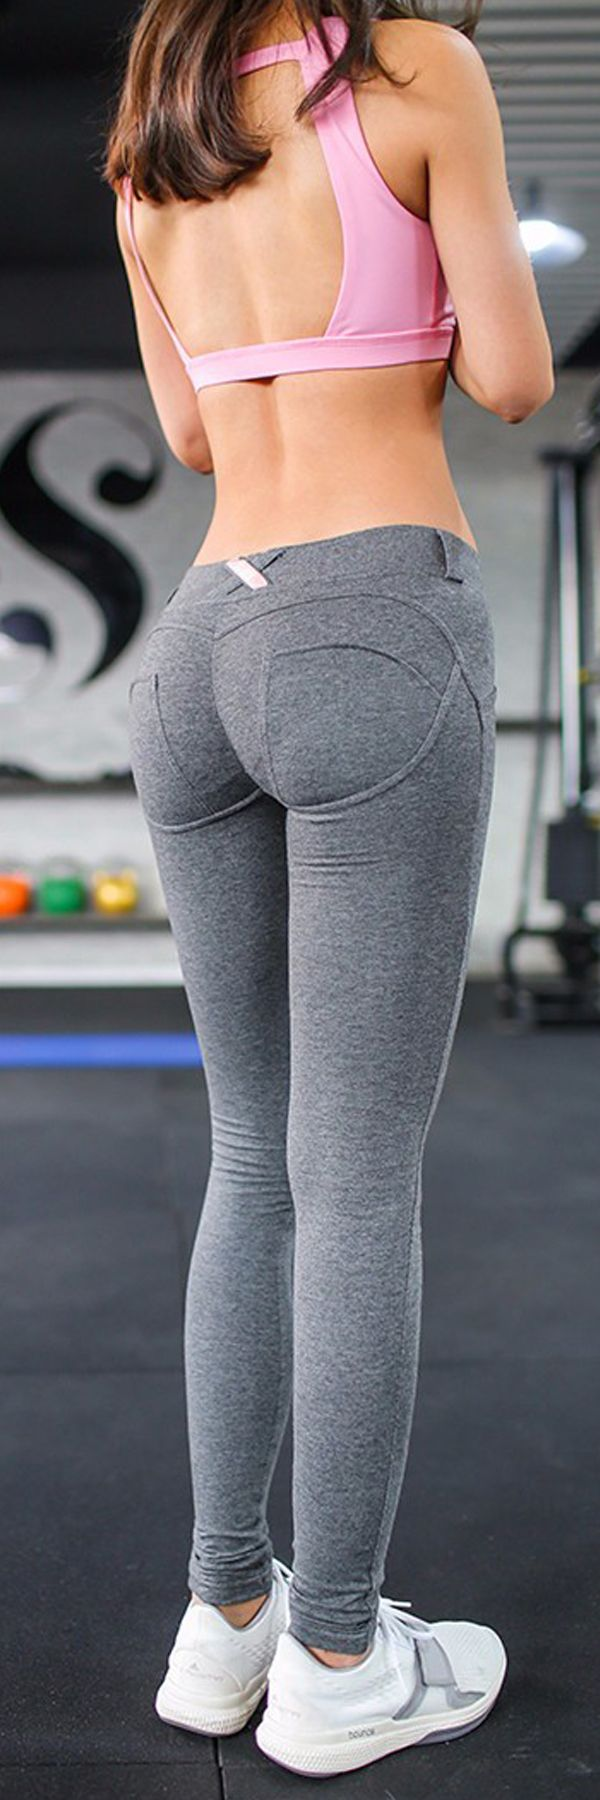 I'm crazy about these butt-lifting leggings! They are really perfect for exercising or just some flirty fun! They are made from a high quality compression blend material which lifts your hips and butt